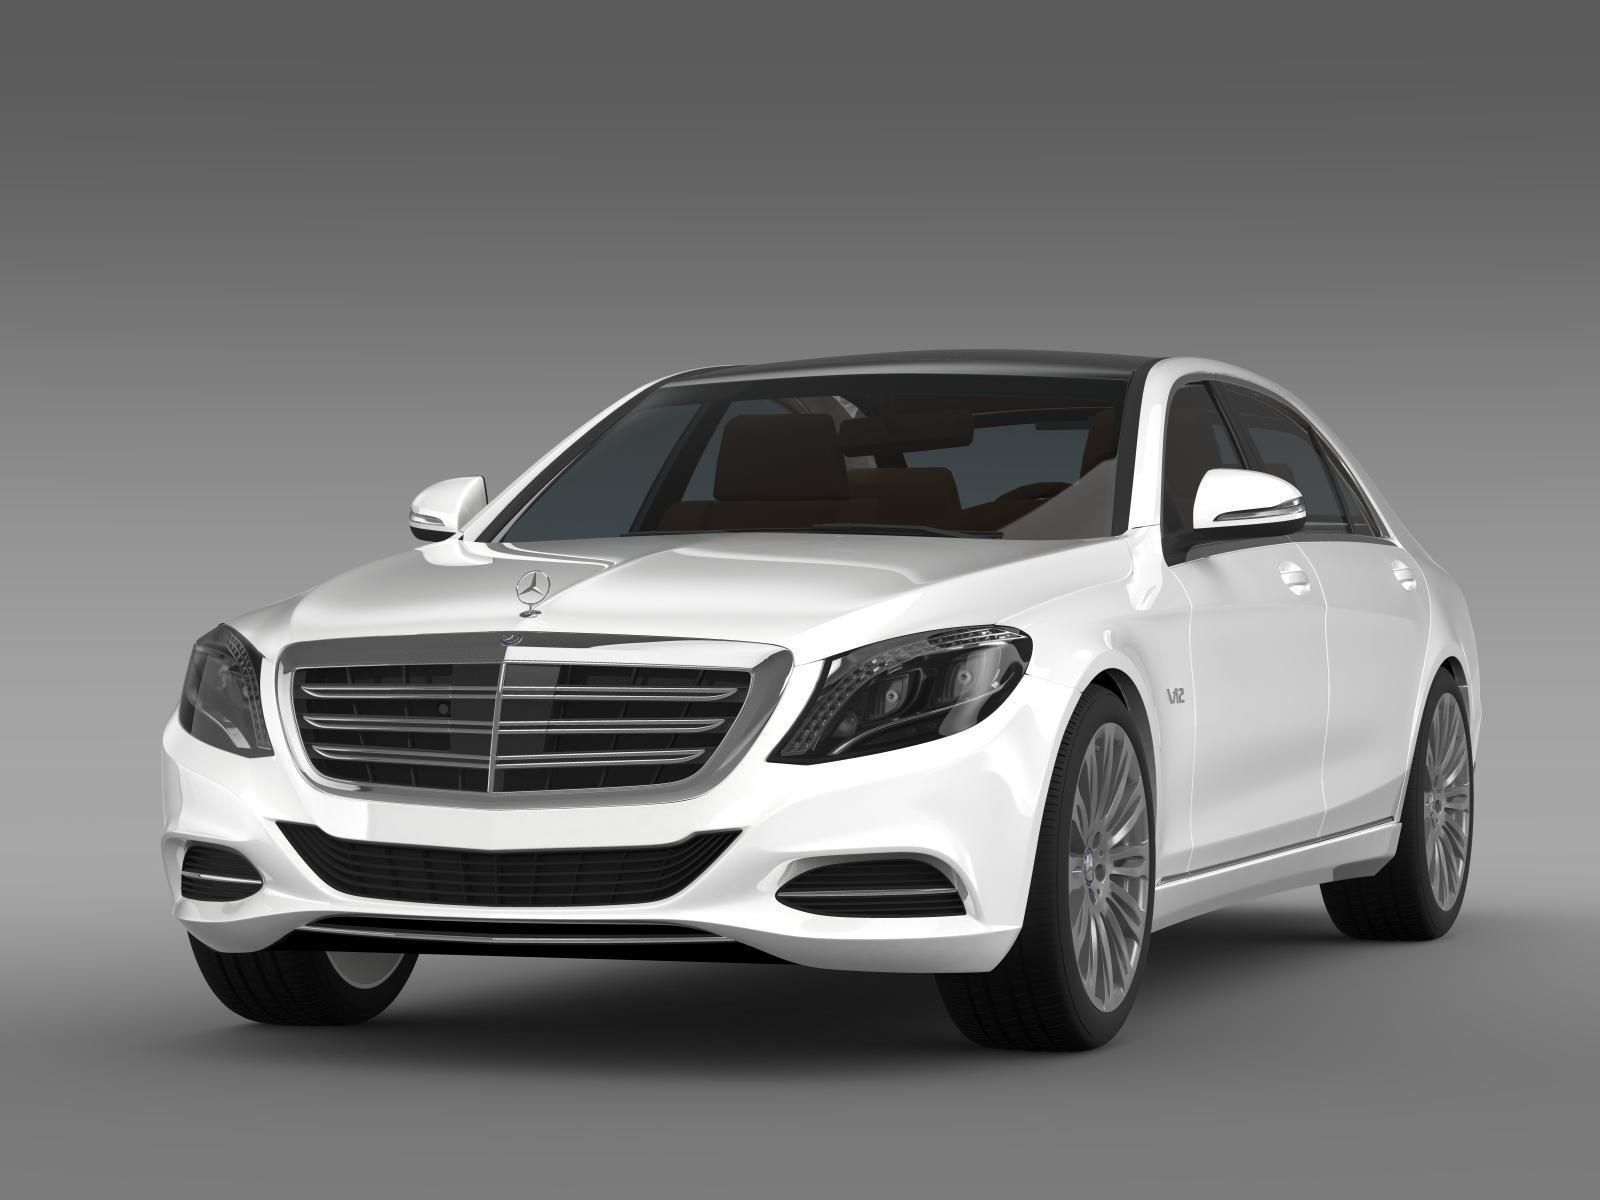 mercedes benz s 600 v12 w222 2014 3d model max obj 3ds fbx